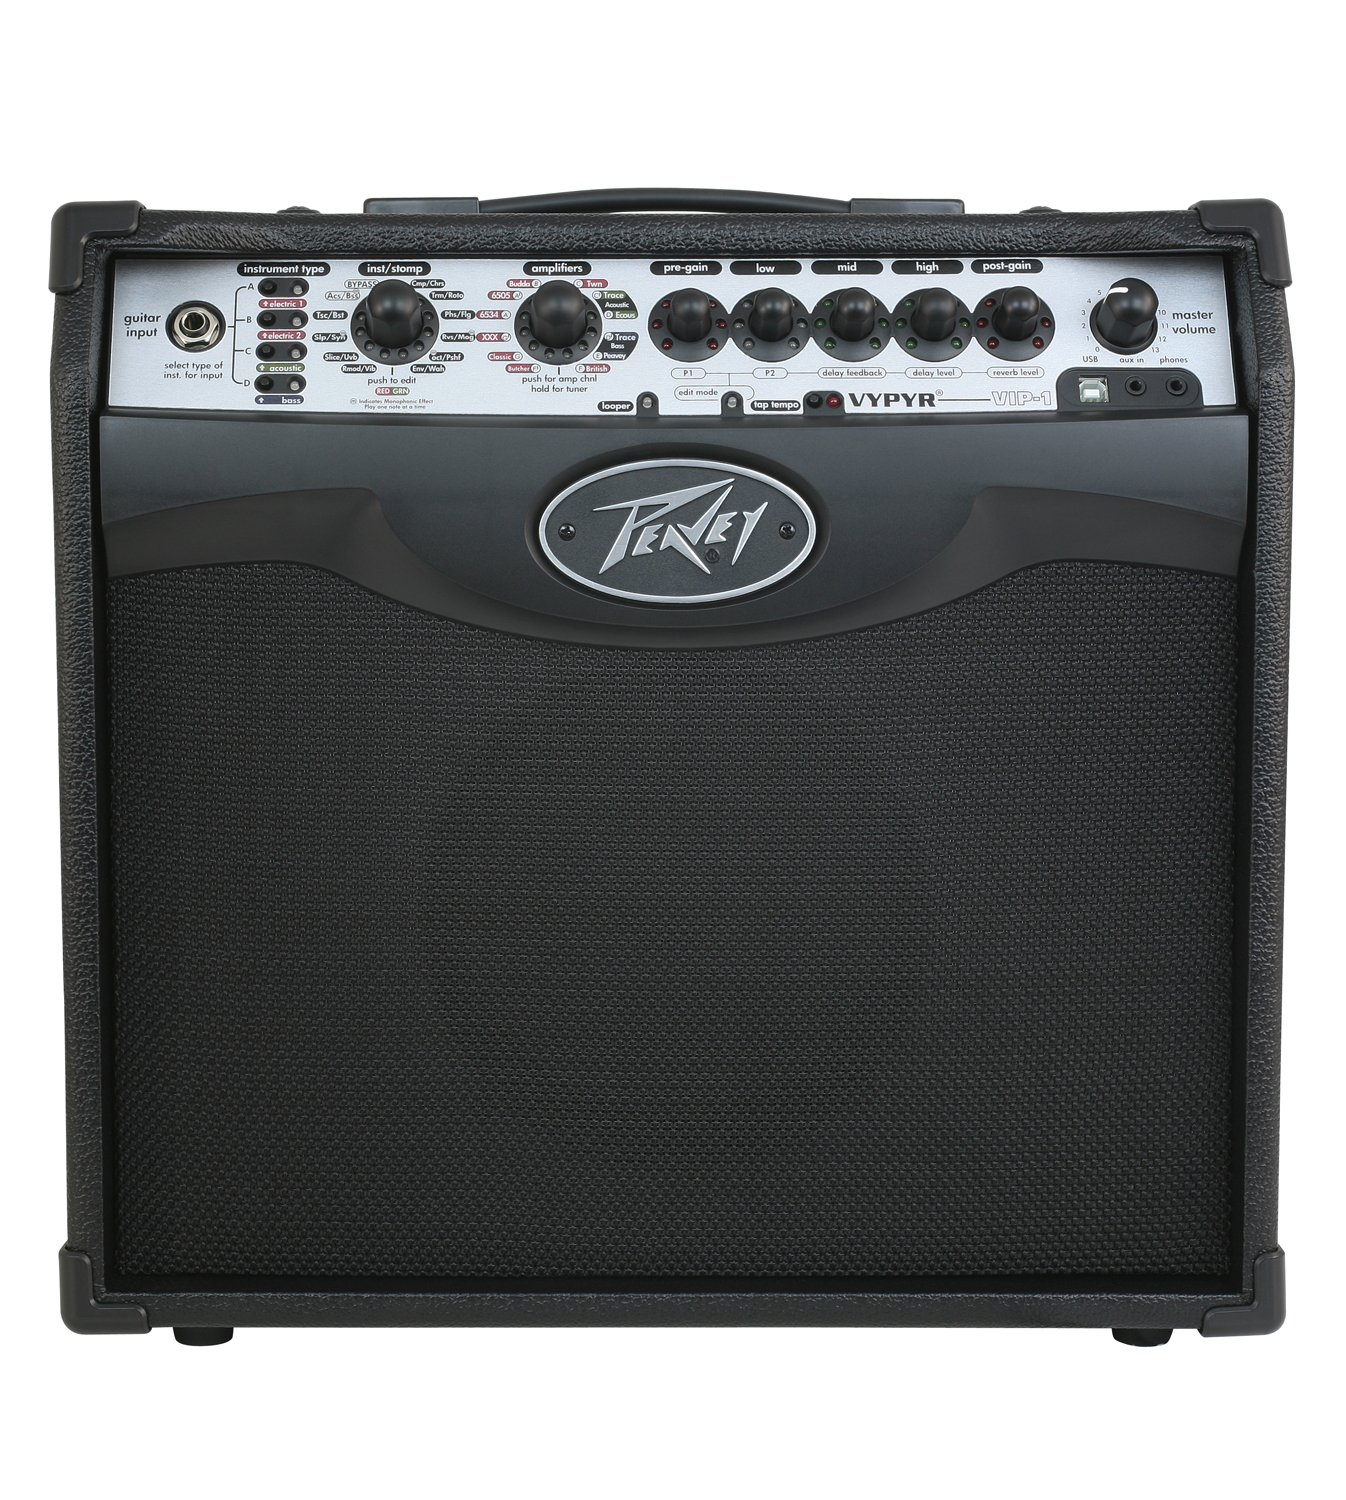 PEAVEY VYPYR VIP 1 MODELING GUITAR COMBO AMPLIFIER 1x8 20W (03608060)